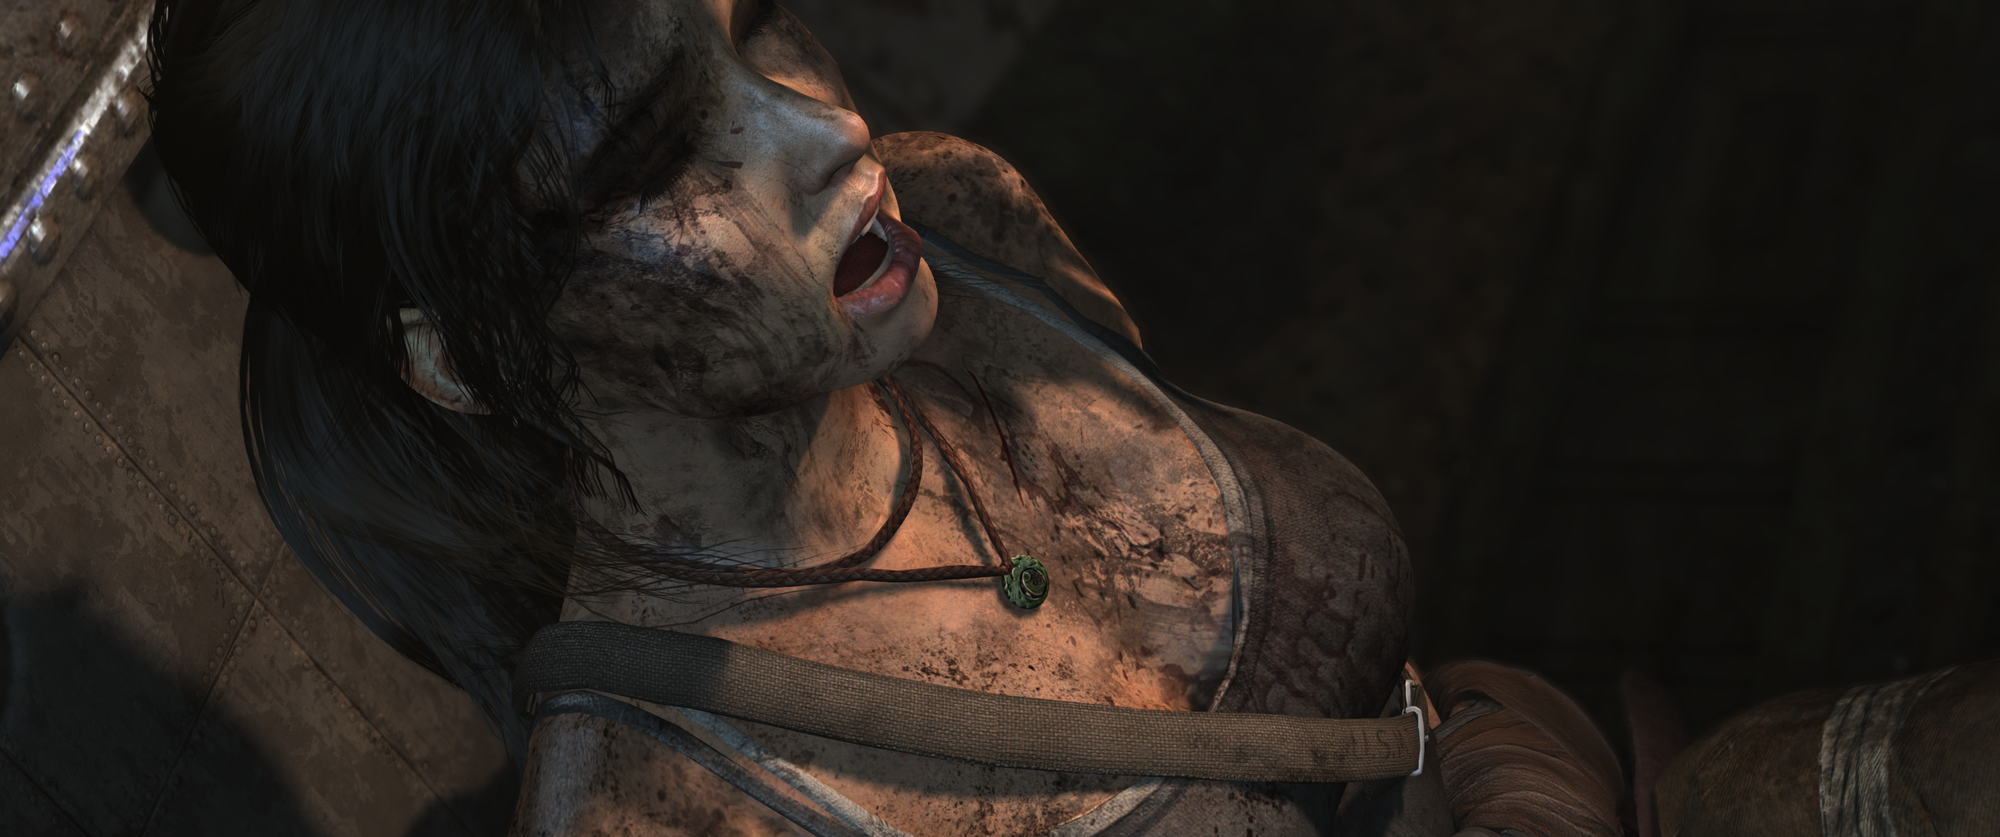 TombRaider_2018_07_23_21_15_55_969.png